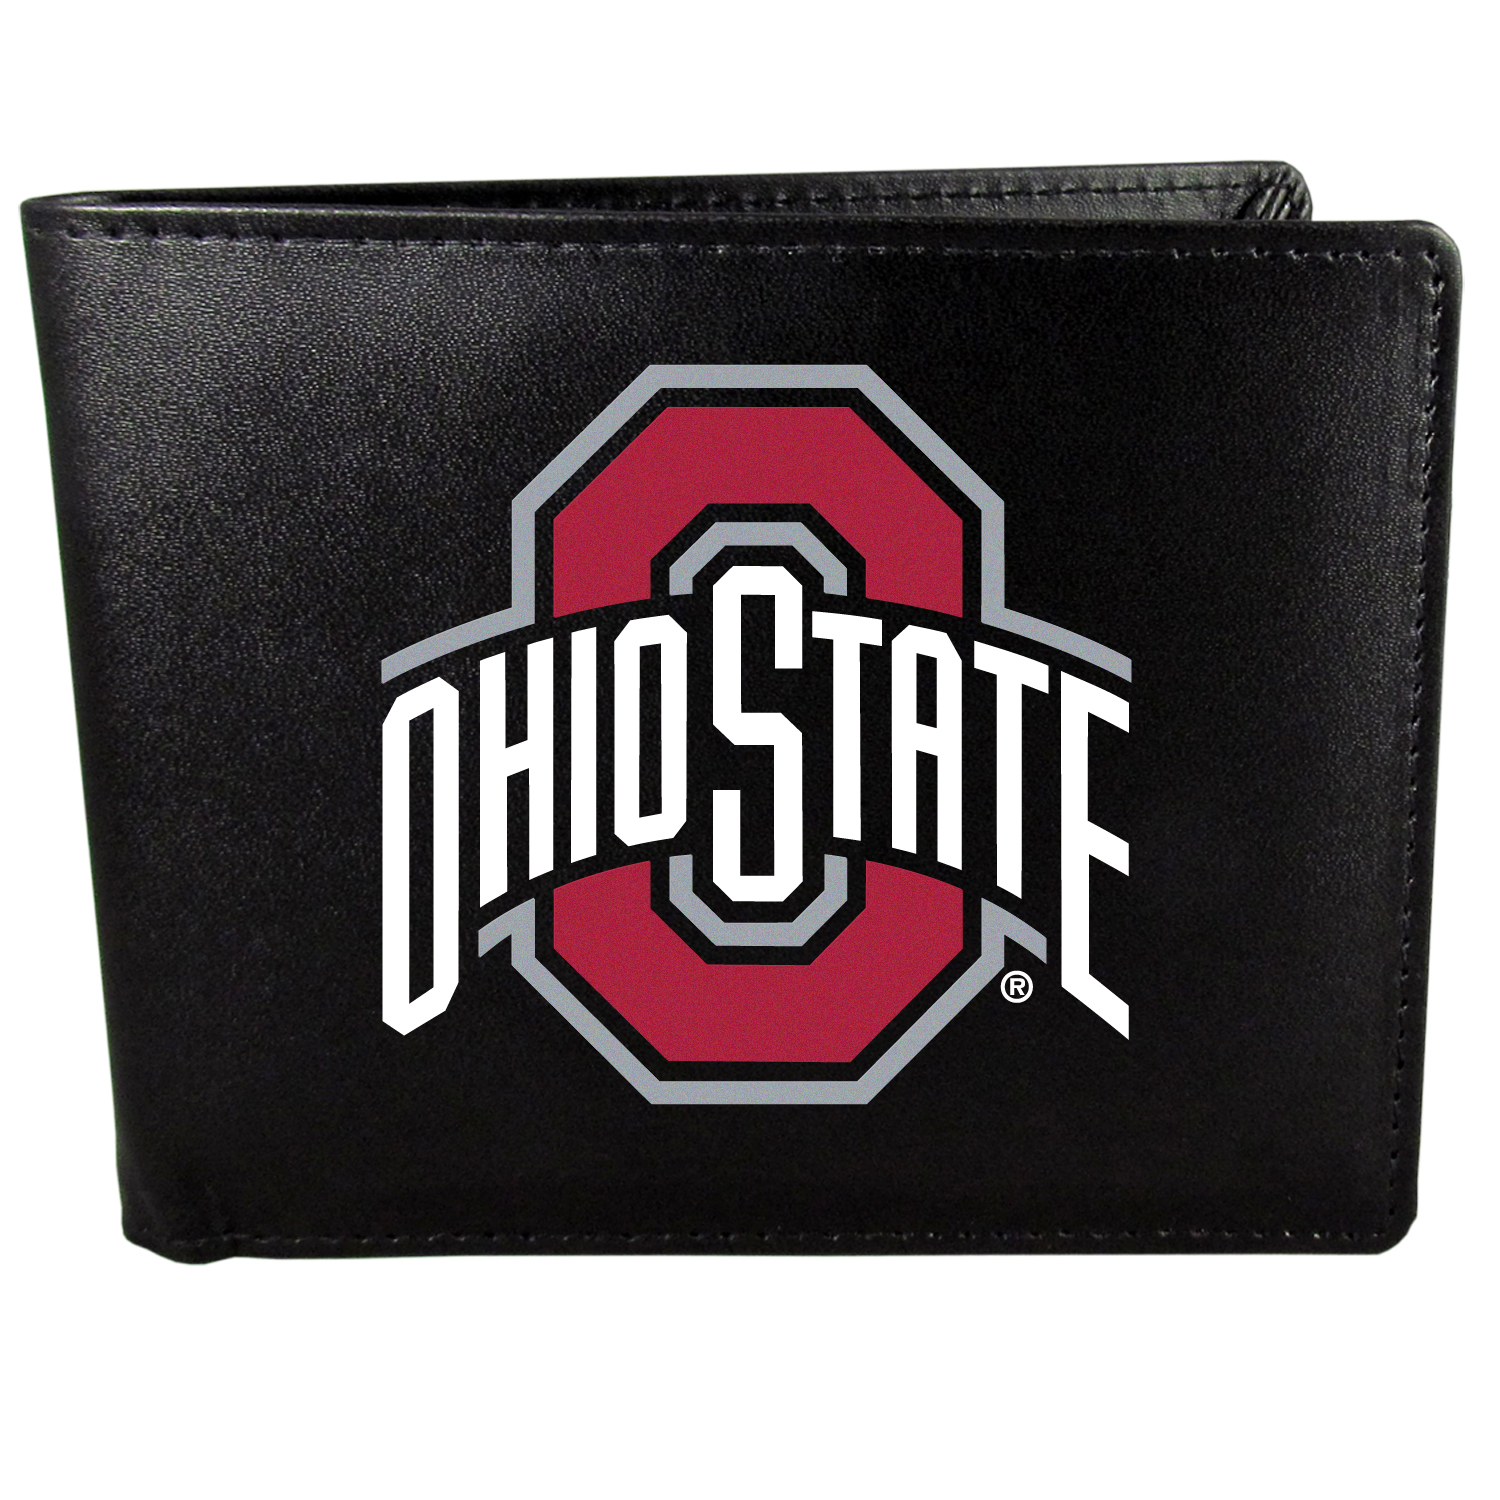 Ohio St. Buckeyes Bi-fold Wallet Large Logo - Sports fans do not have to sacrifice style with this classic bi-fold wallet that sports the Ohio St. Buckeyes extra large logo. This men's fashion accessory has a leather grain look and expert craftmanship for a quality wallet at a great price. The wallet features inner credit card slots, windowed ID slot and a large billfold pocket. The front of the wallet features a printed team logo.